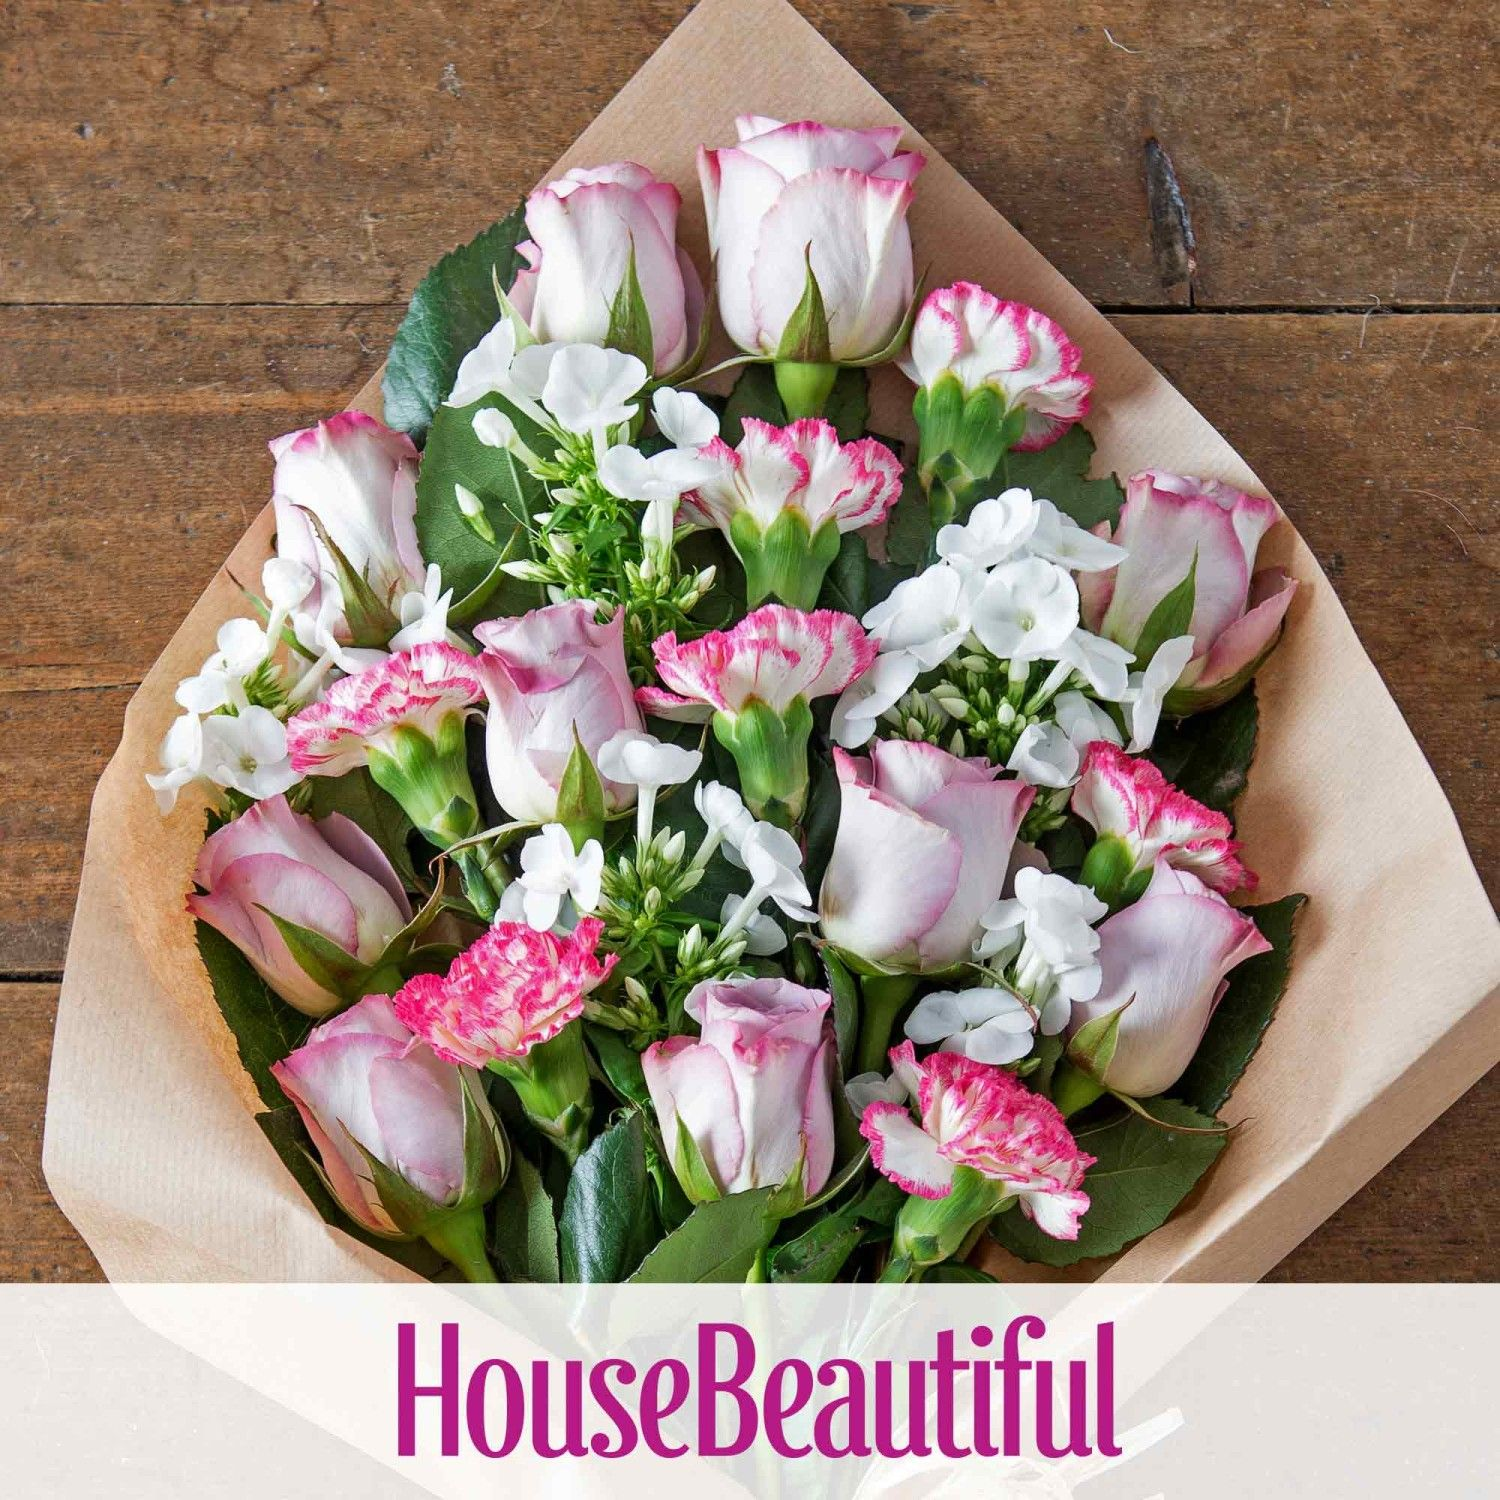 Elegant Rose Phlox And Carnation Mothers Day Flowers Flowers Delivered Flowers